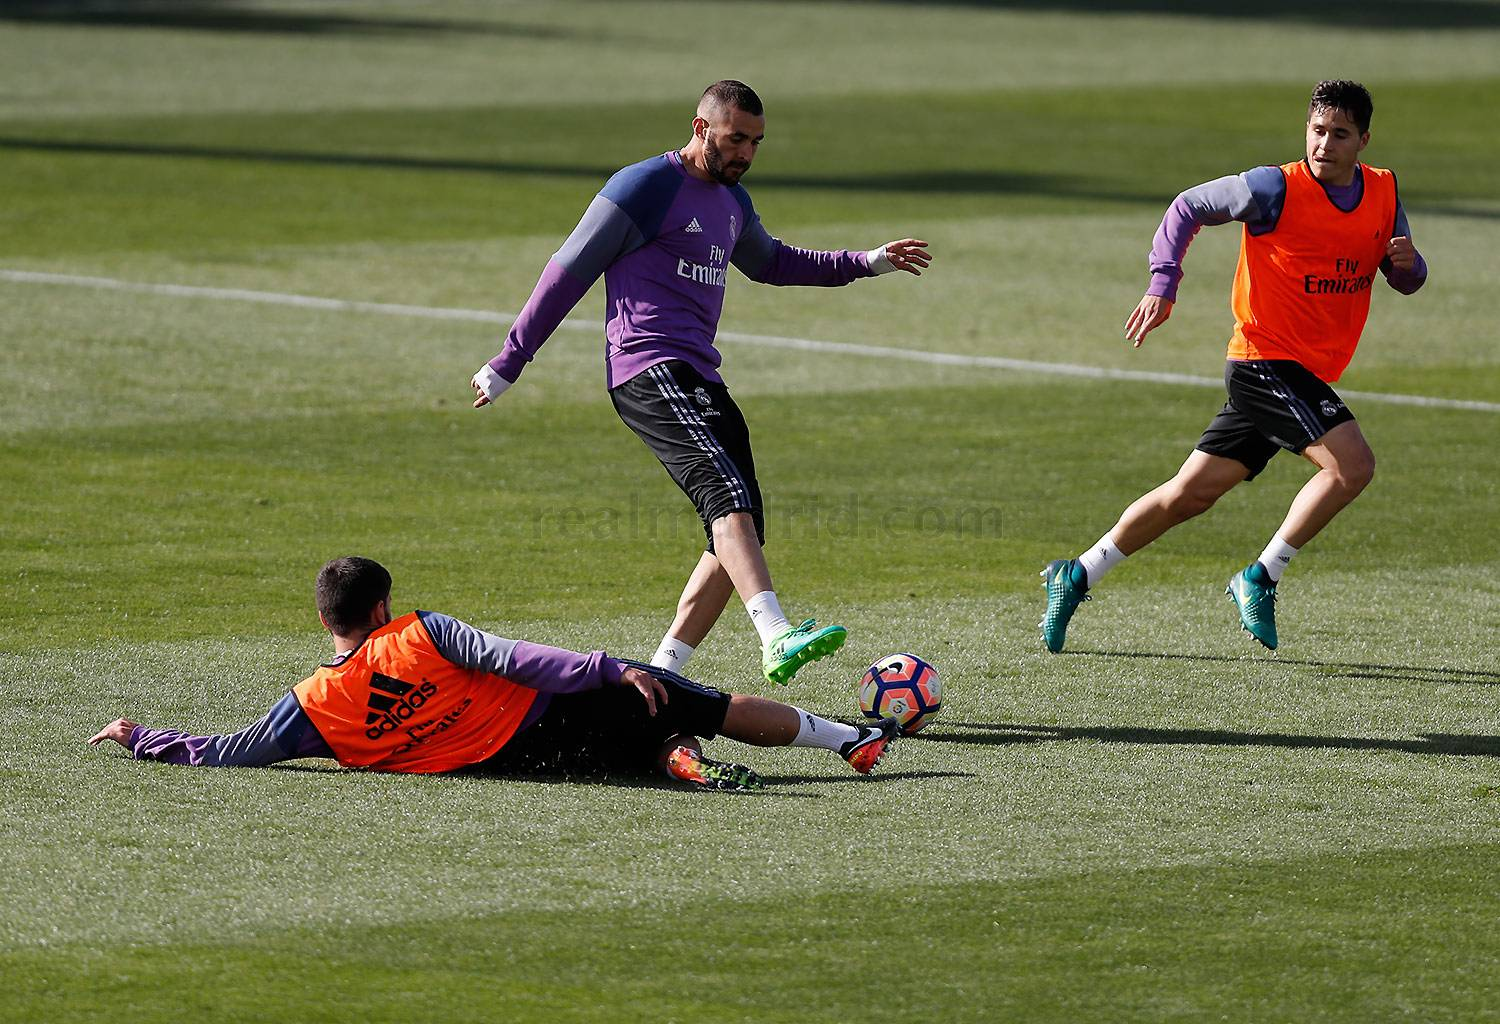 Real Madrid - Entrenamiento del Real Madrid - 27-03-2017